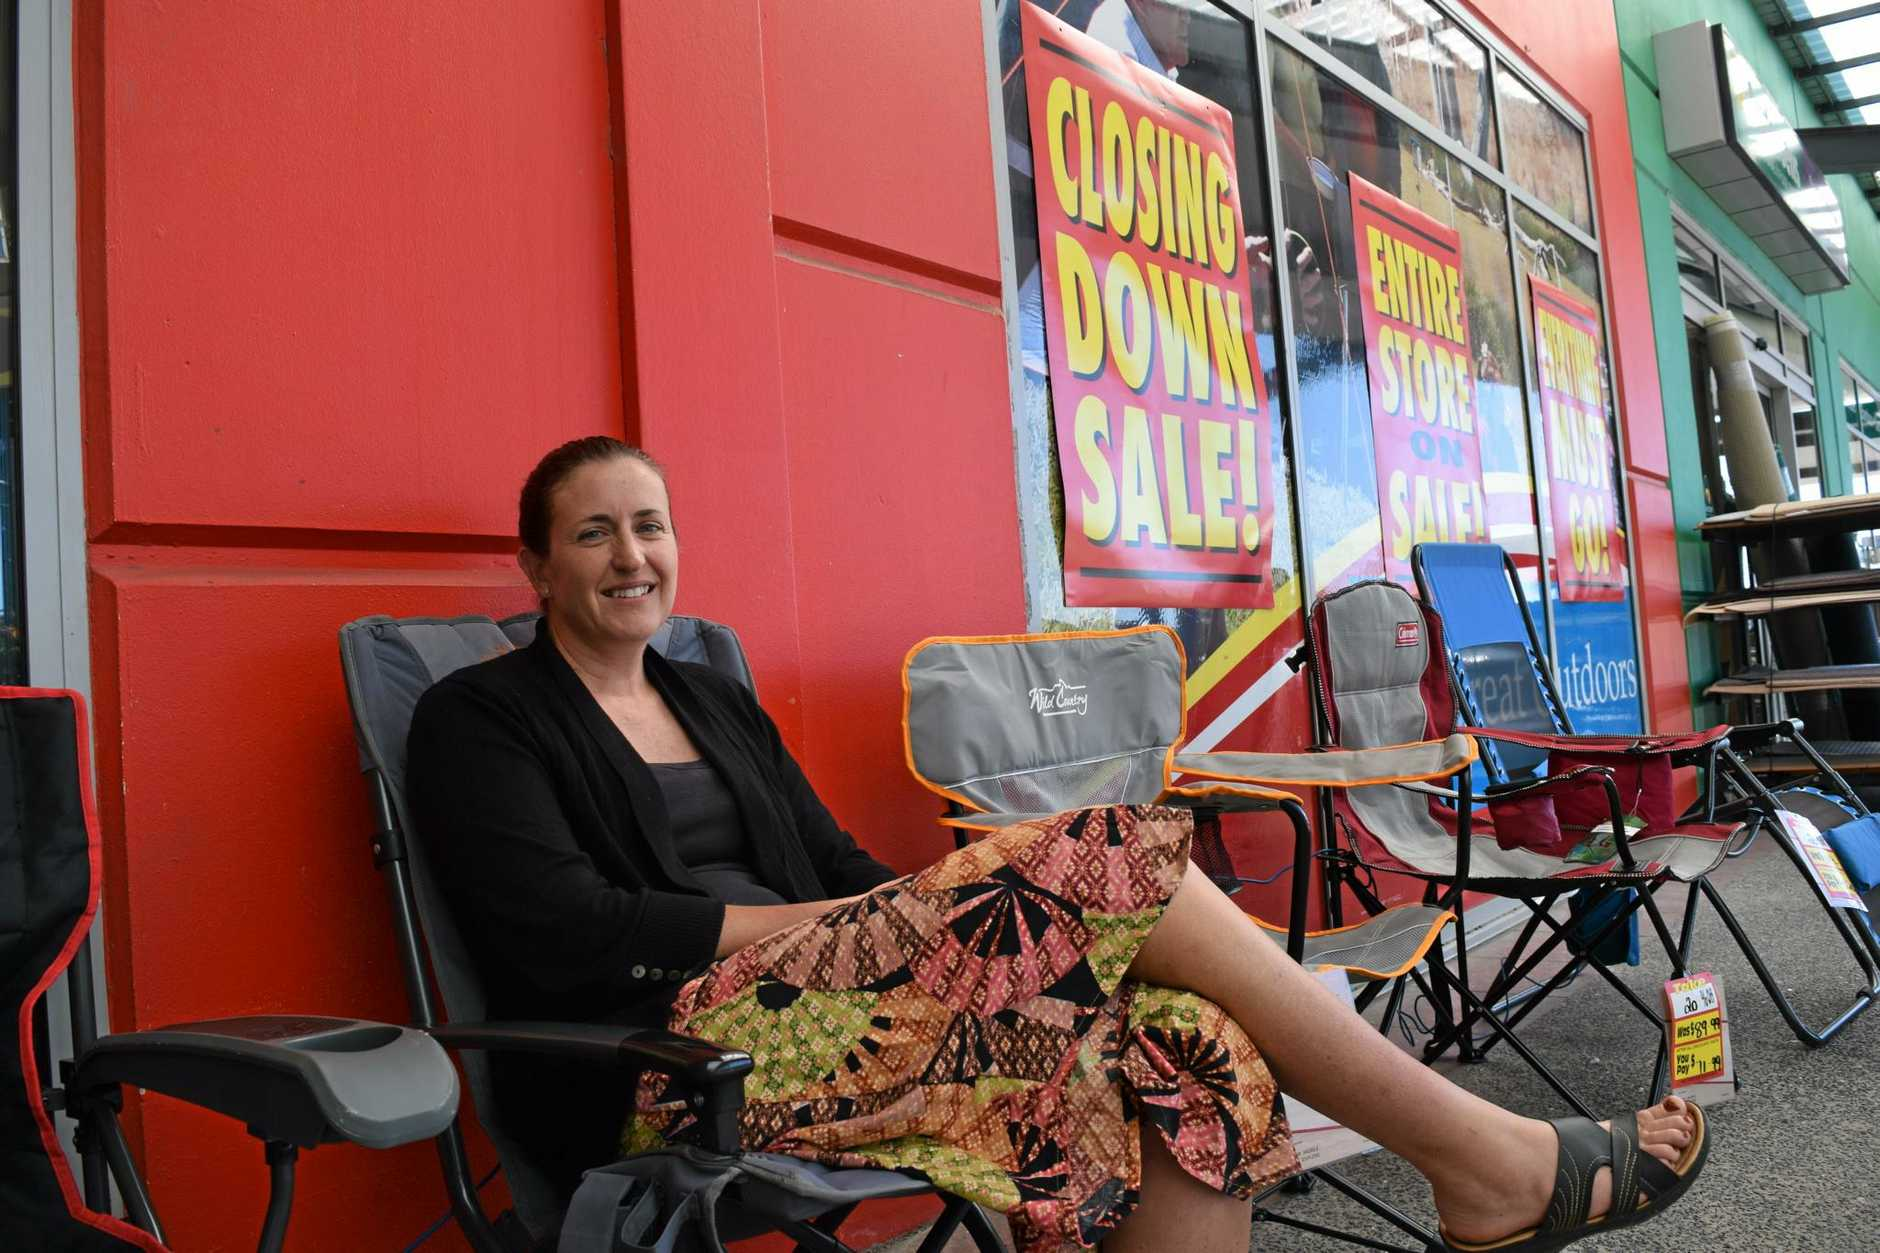 Kirstie Henning considers the discounted chairs at Ray's Outdoors Maroochydore, which is closing down.